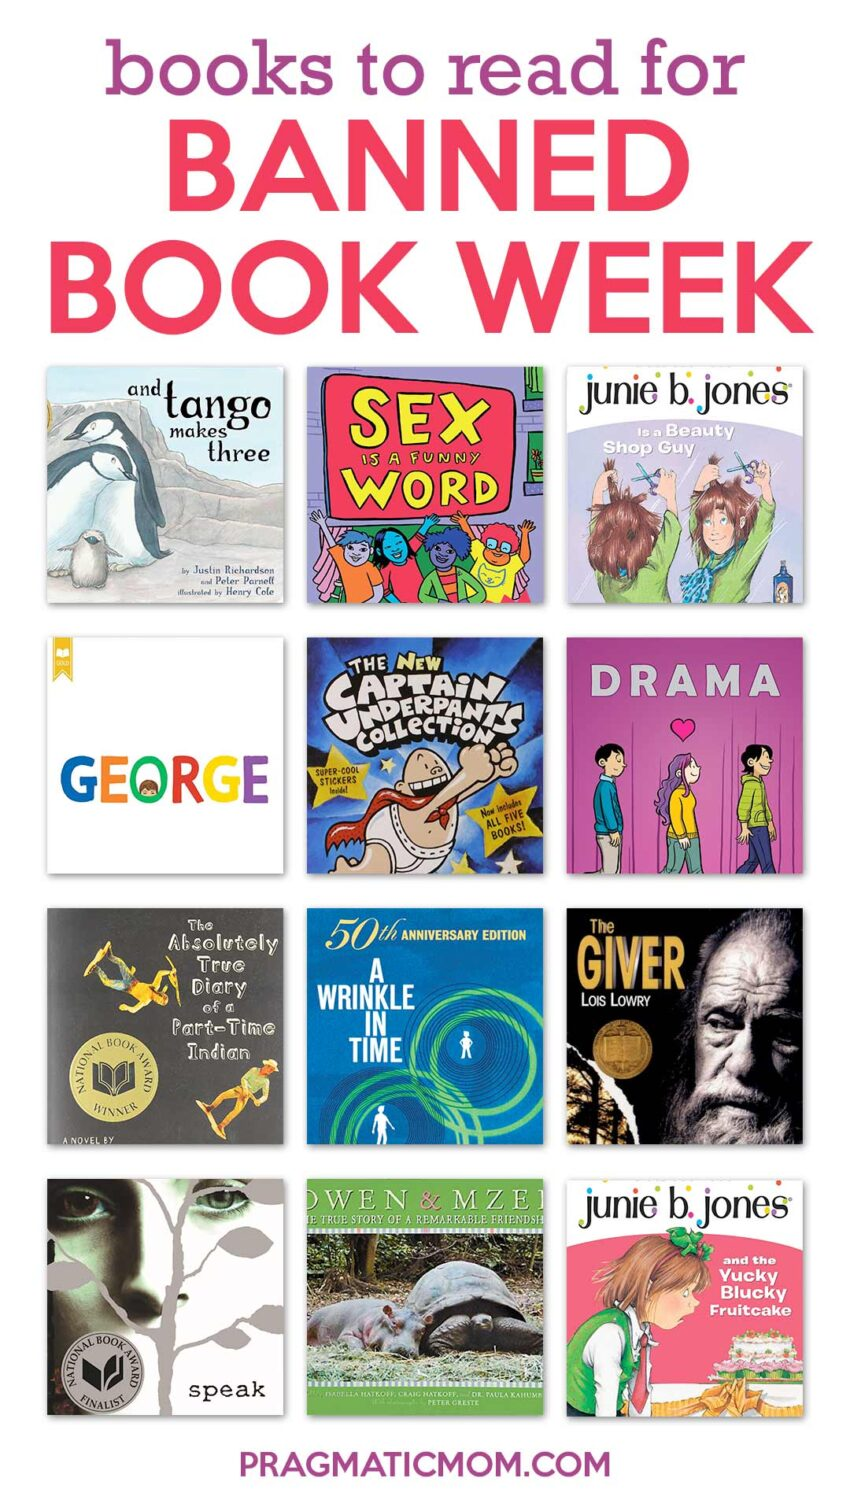 Books to Read for Banned Book Week